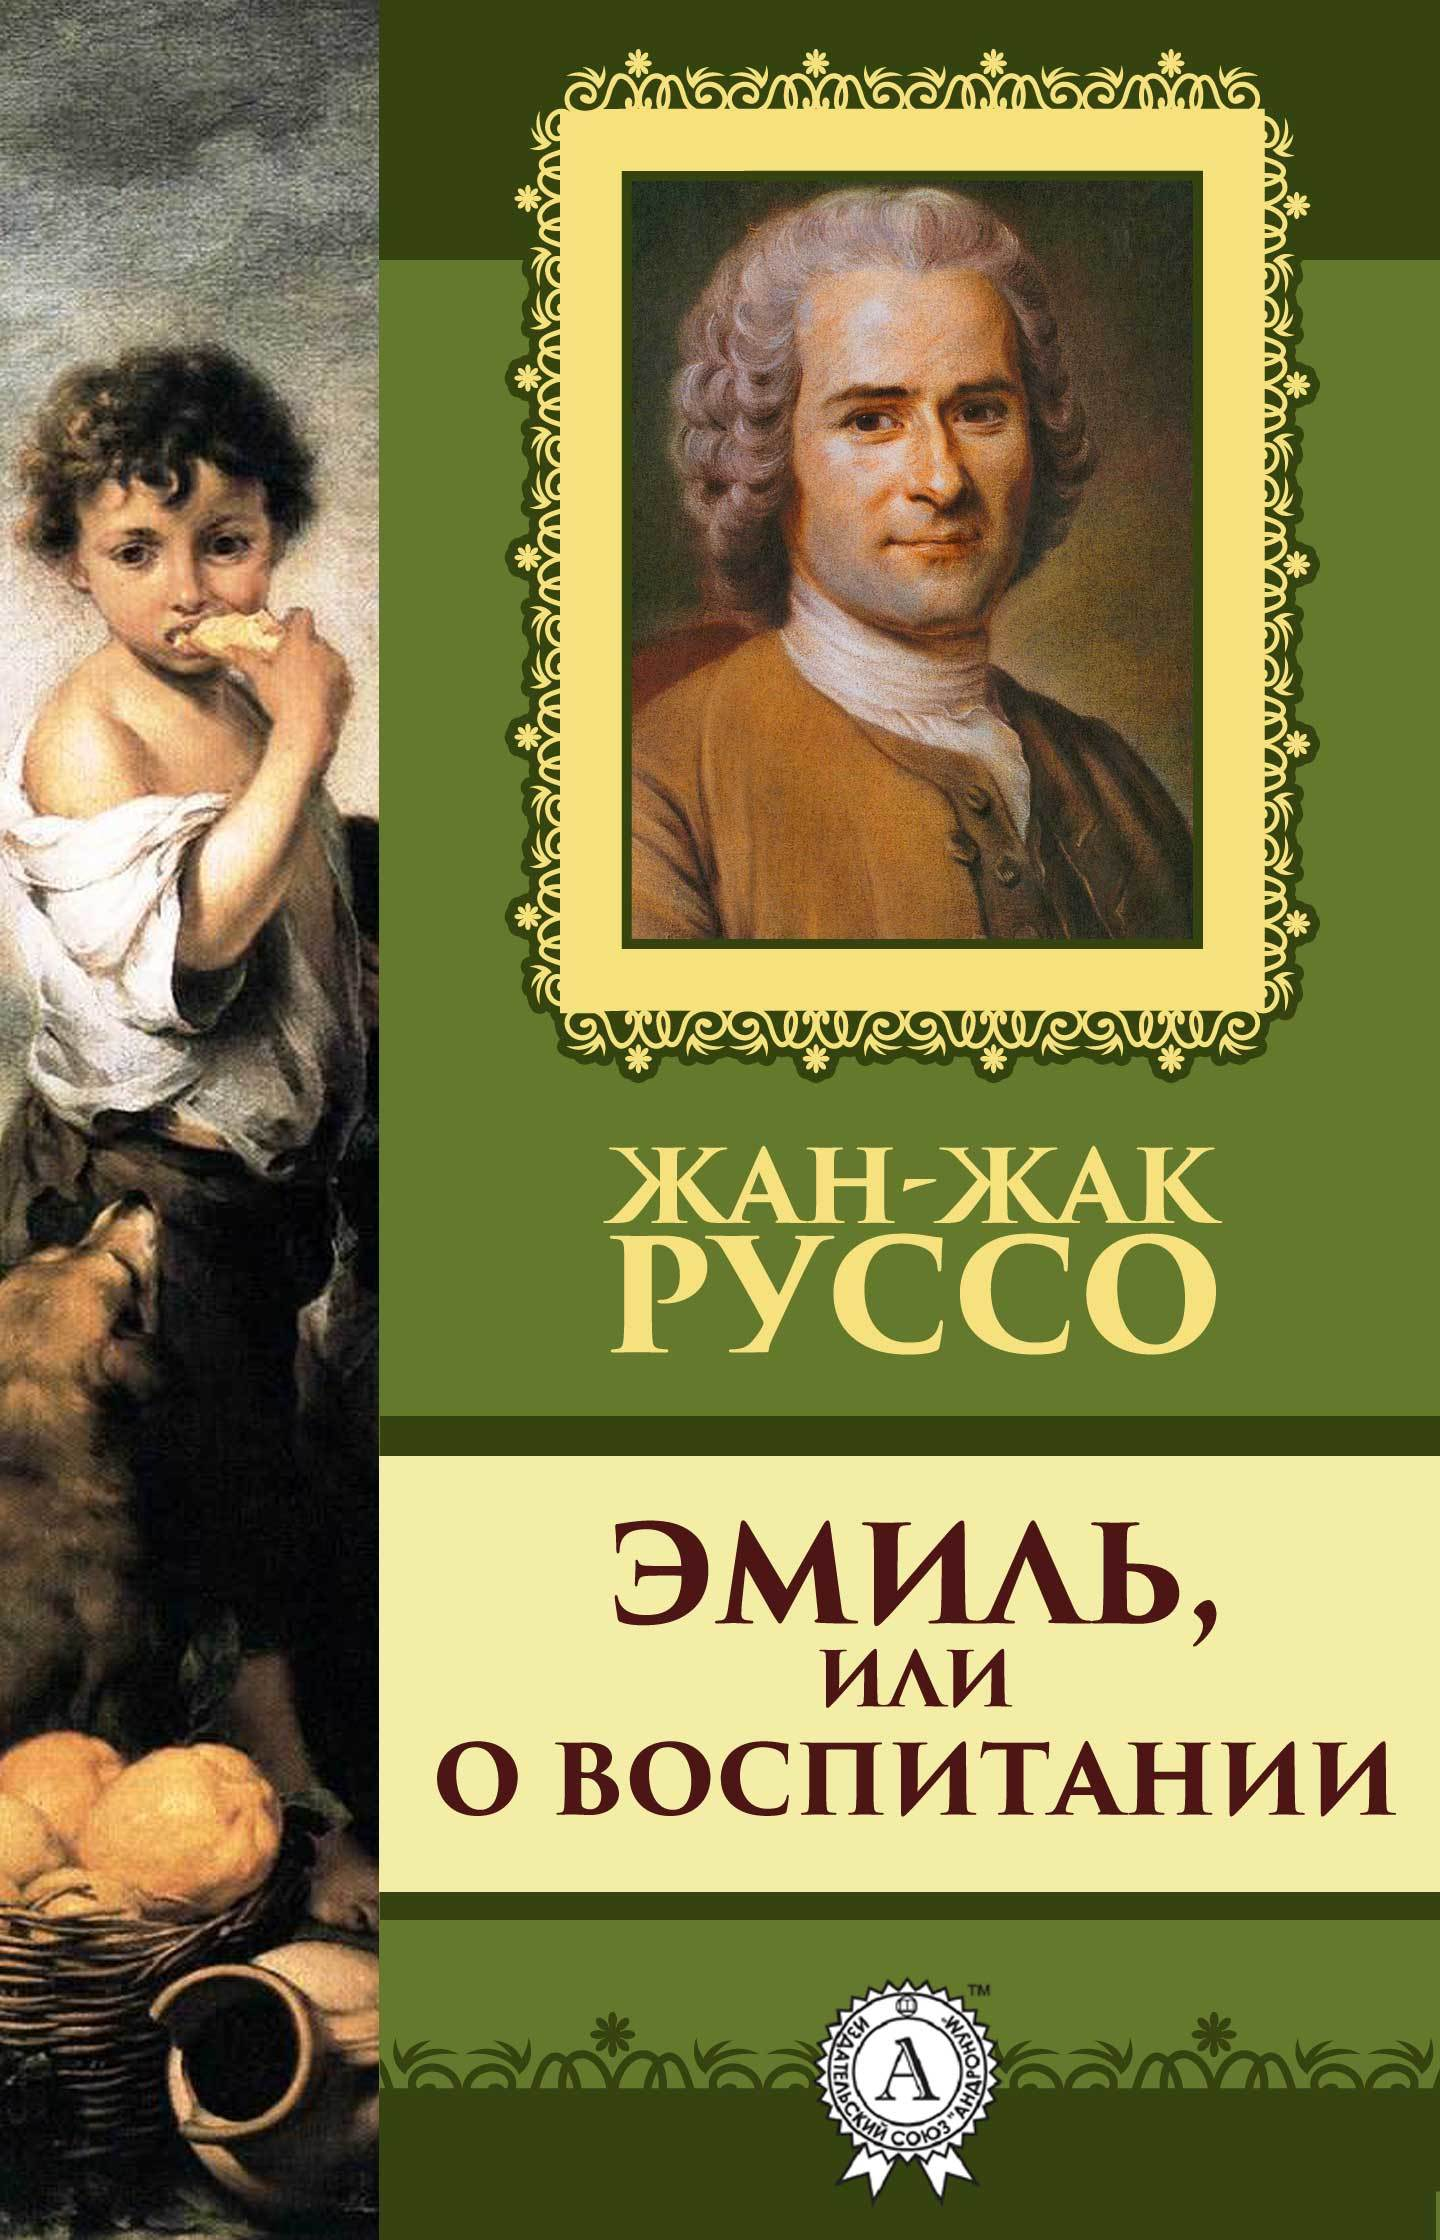 the question of whether one should obey an unjust law in the theory of jean jacques rousseau